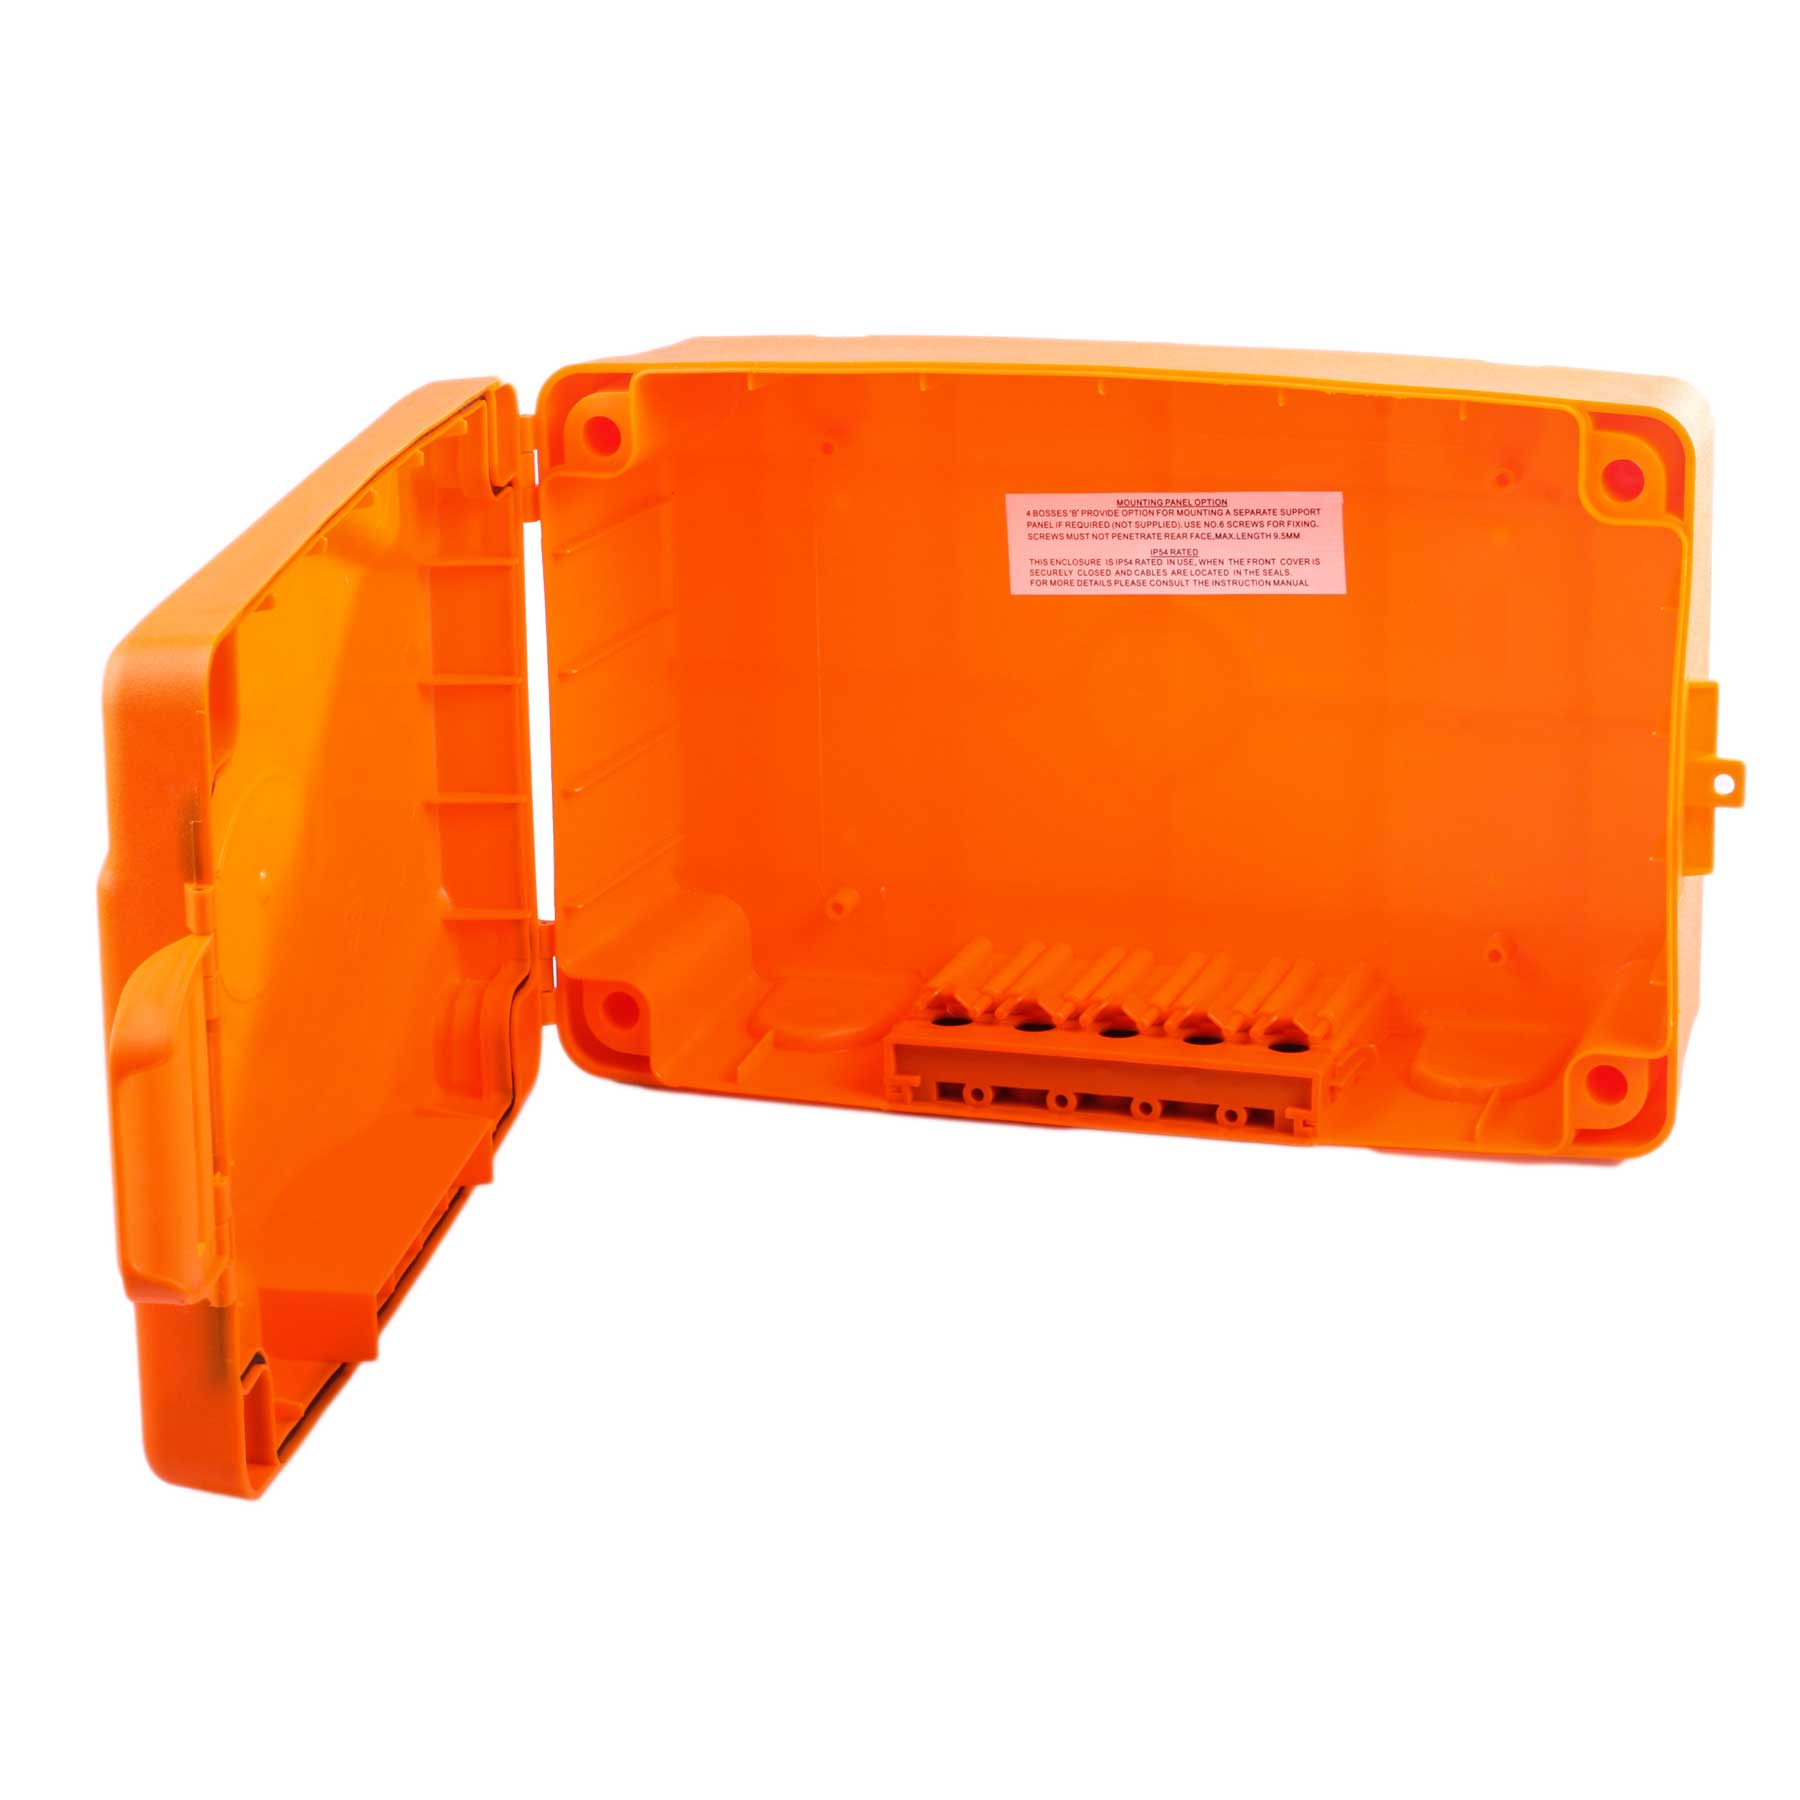 Masterplug ip54 Weatherproof Electric Box-Orange